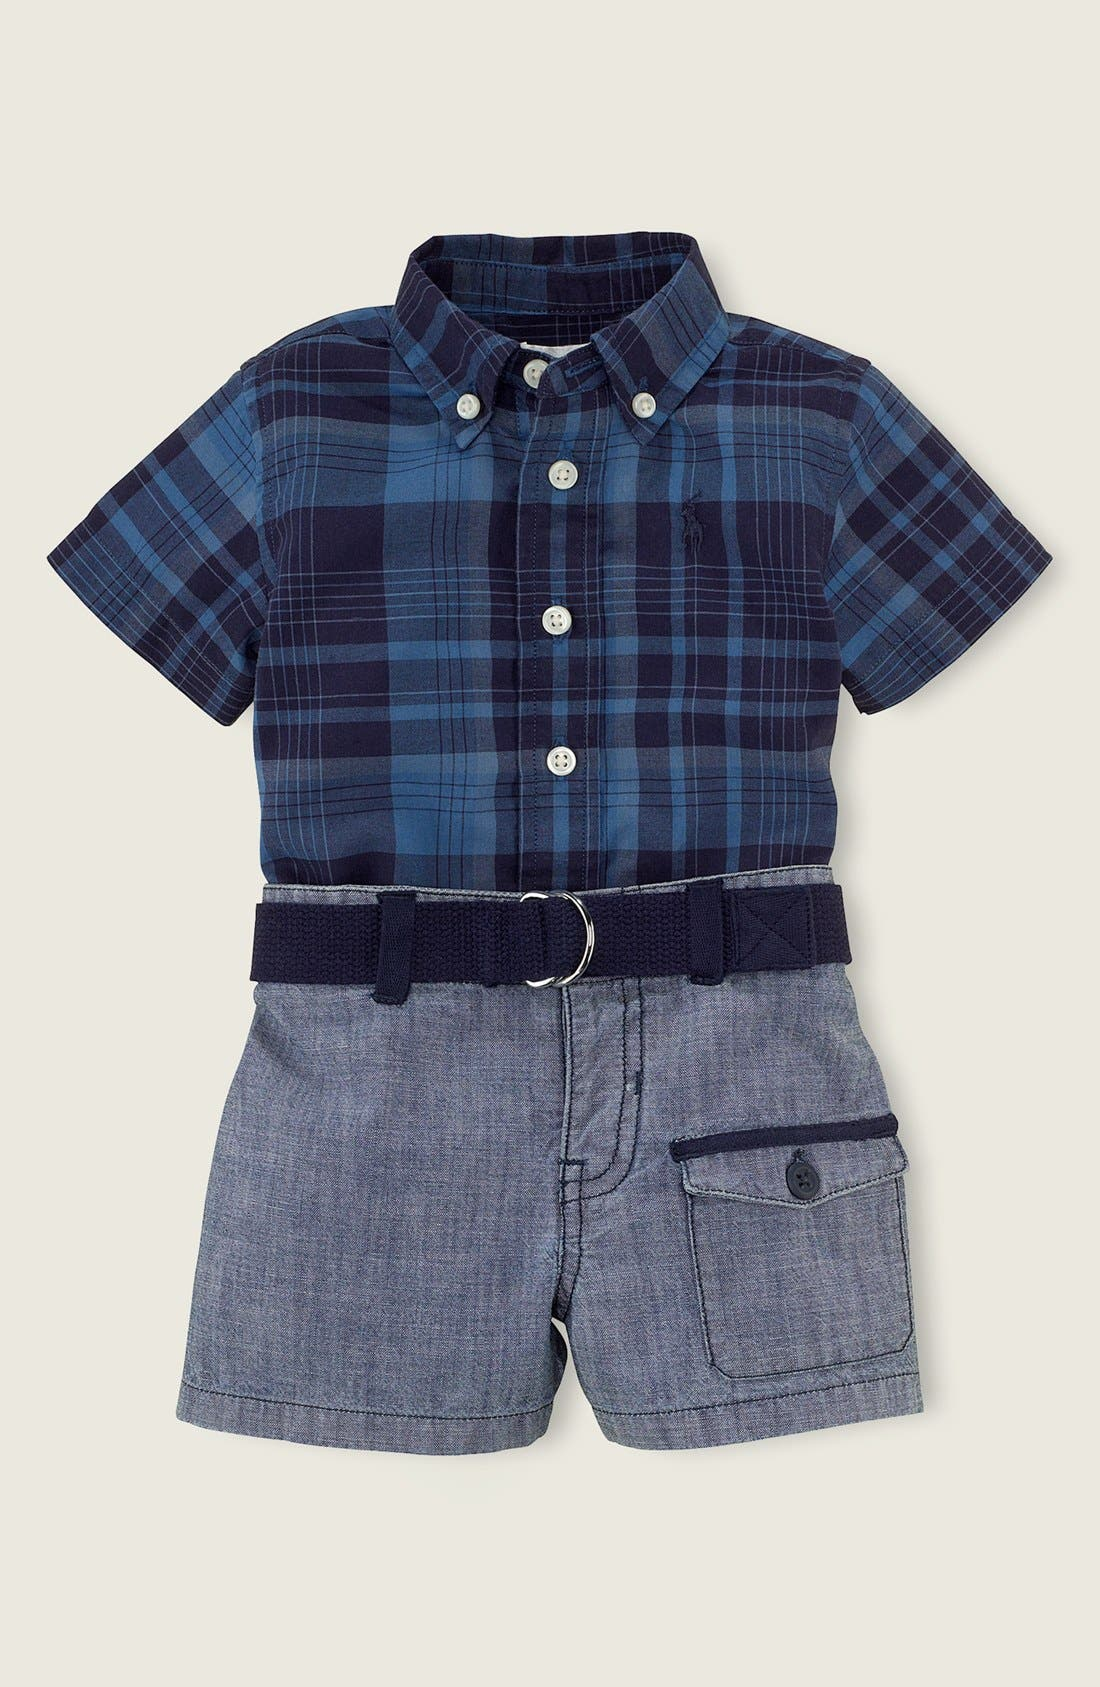 Alternate Image 2  - Ralph Lauren Plaid Shirt & Shorts (Baby Boys)